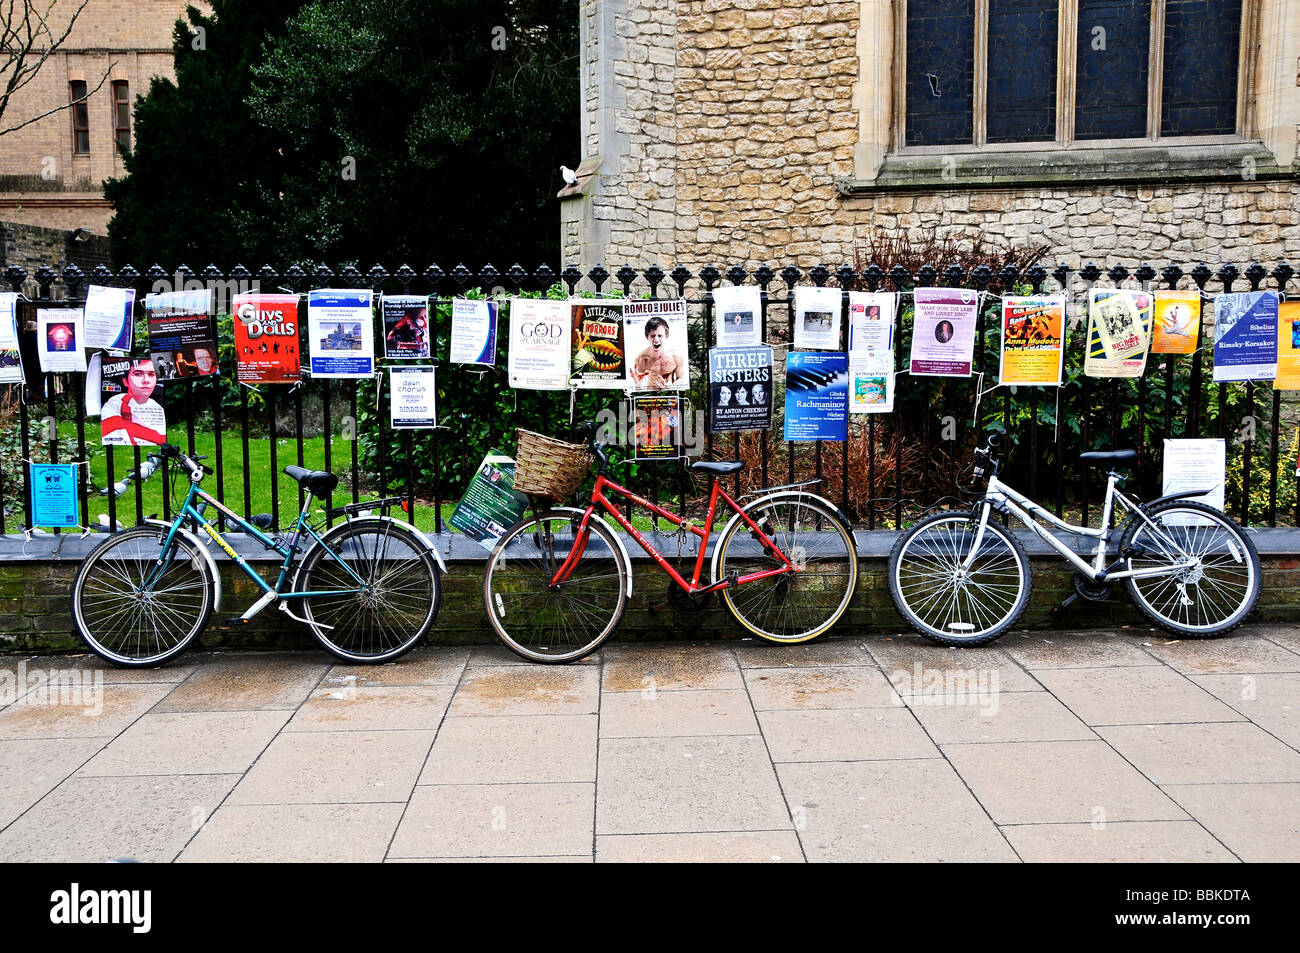 Bikes chained to raliings at Cambridge University, England - Stock Image